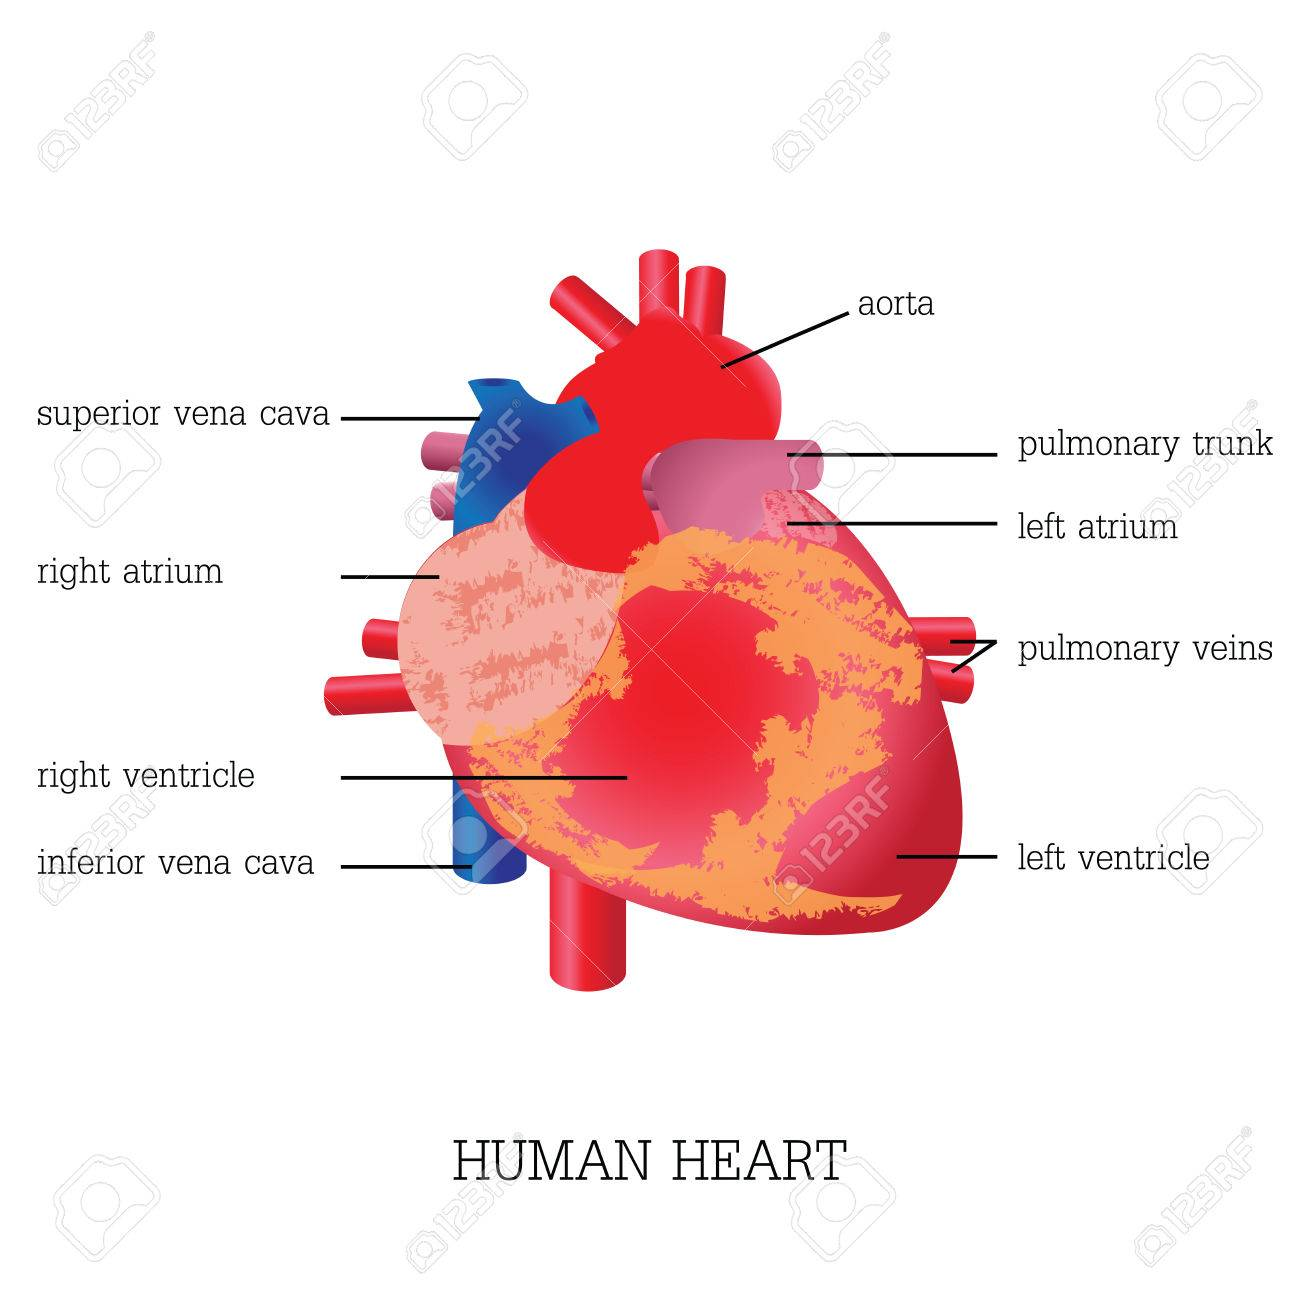 Structure And Function Of Human Heart System,Human Heart System ...